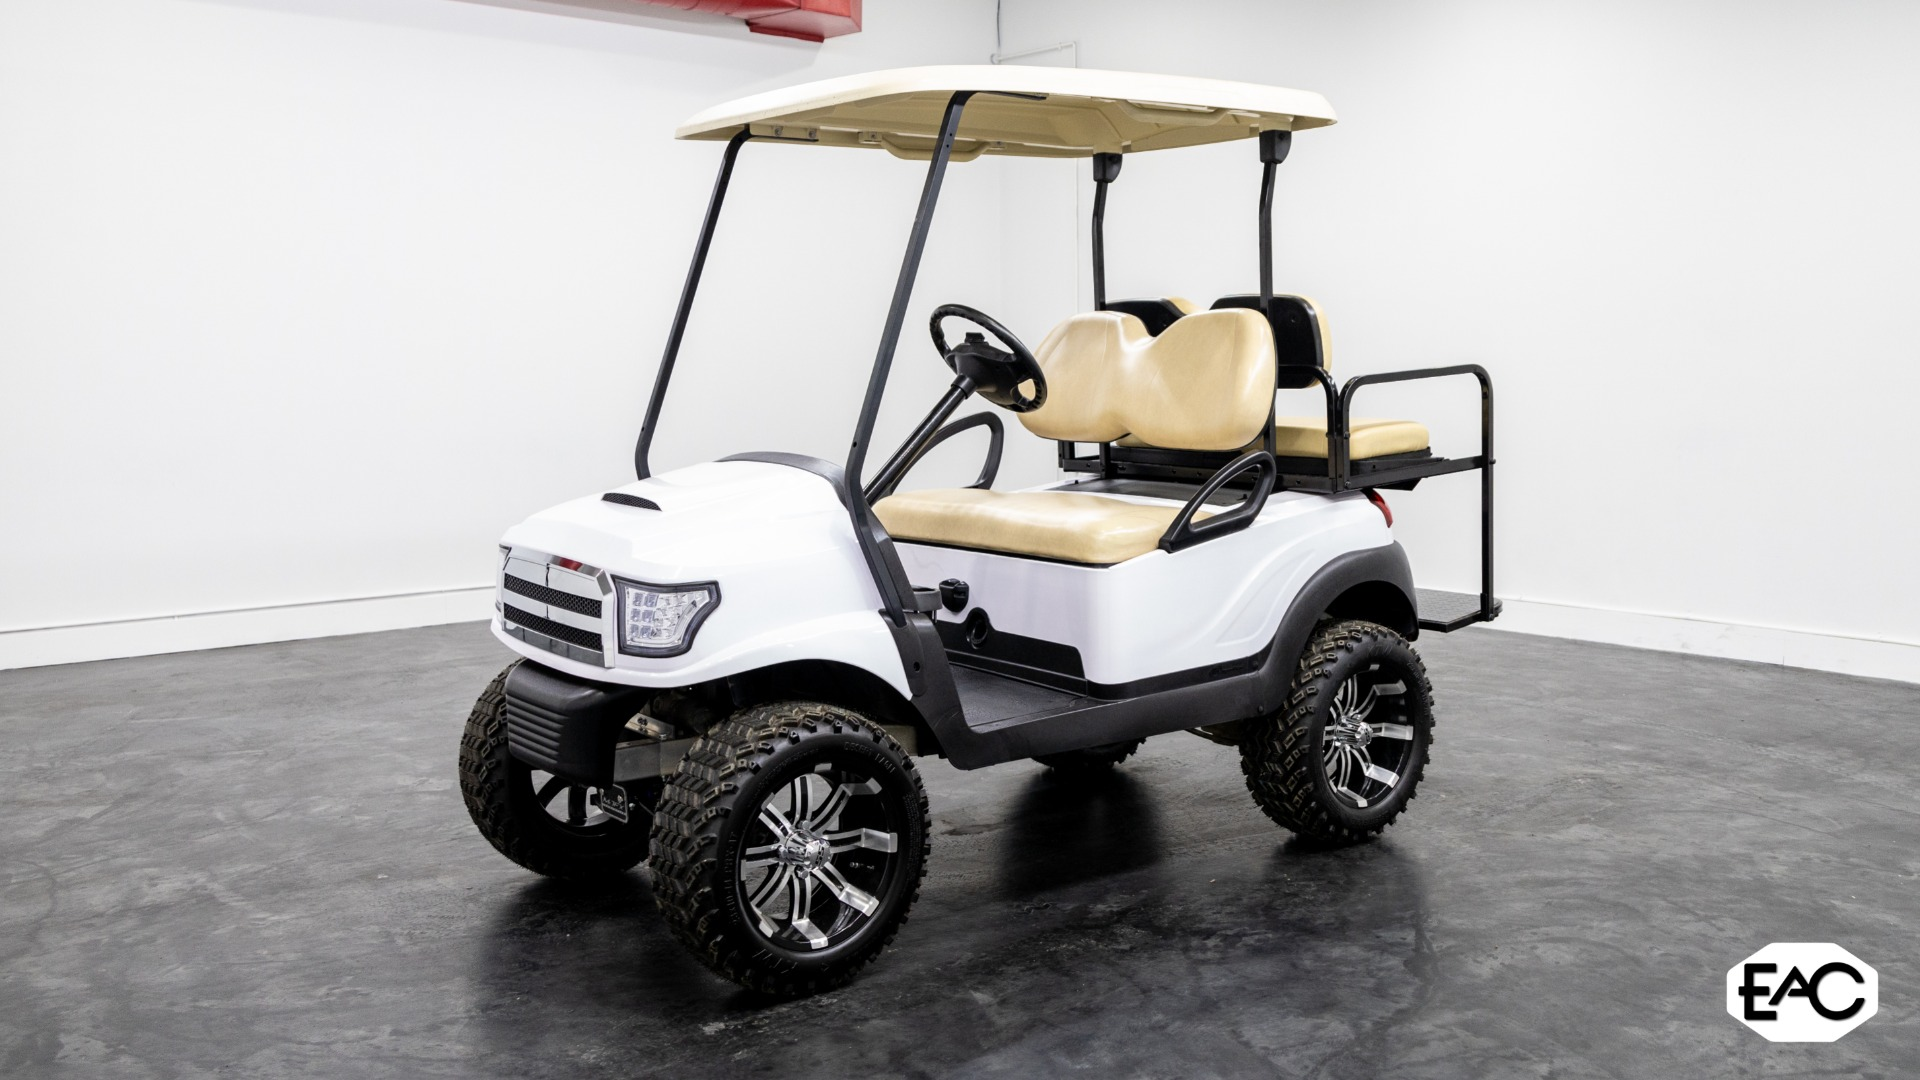 Used 2016 Club cart Precedent for sale $7,490 at Empire Auto Collection in Warren MI 48091 1